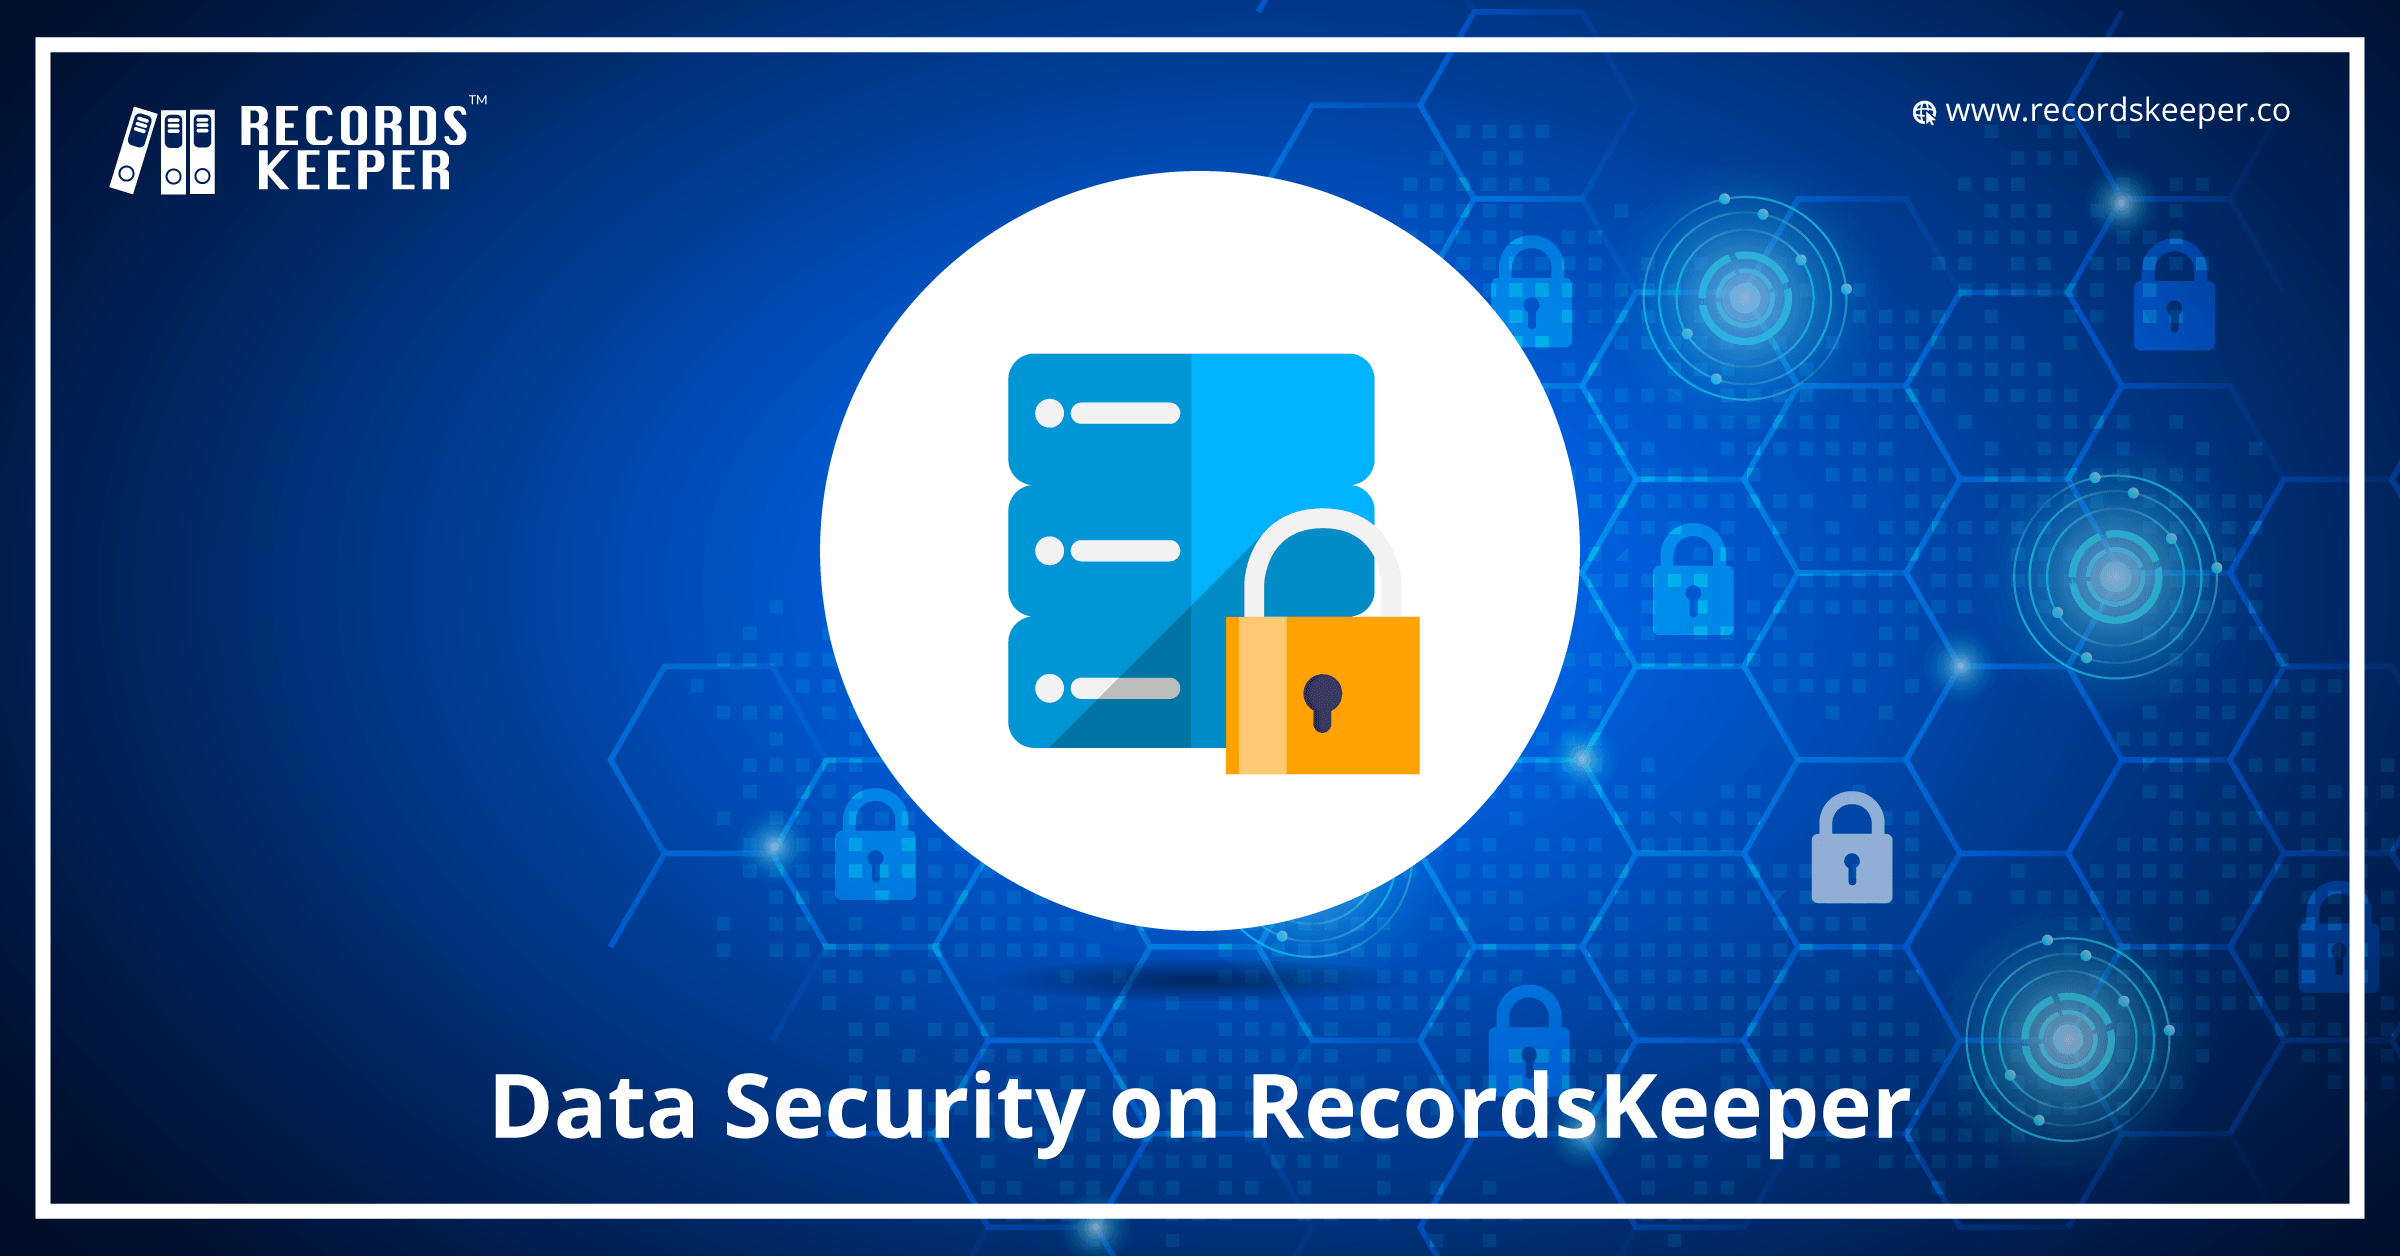 Data security on Recordskeeper